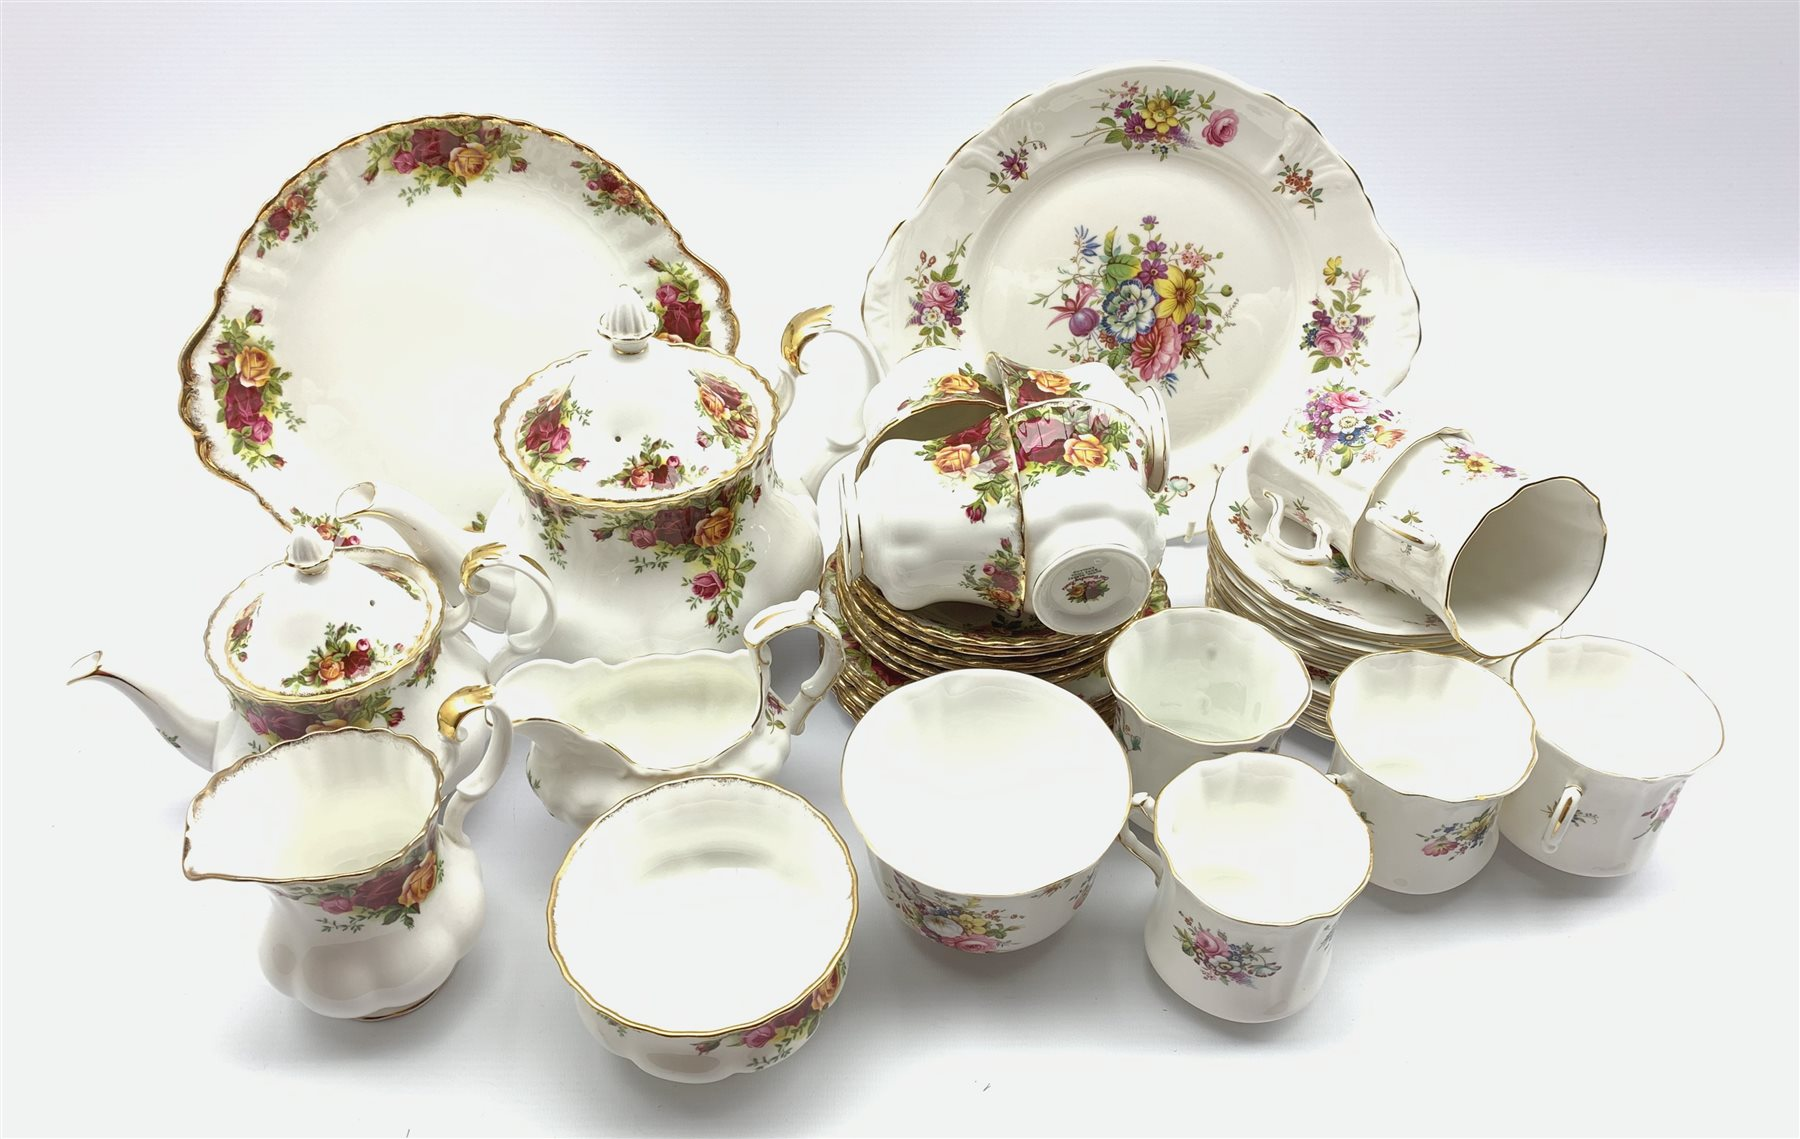 Hammersley Howard Sprays pattern tea set twenty one pieces and Royal Albert Old Country Roses patter